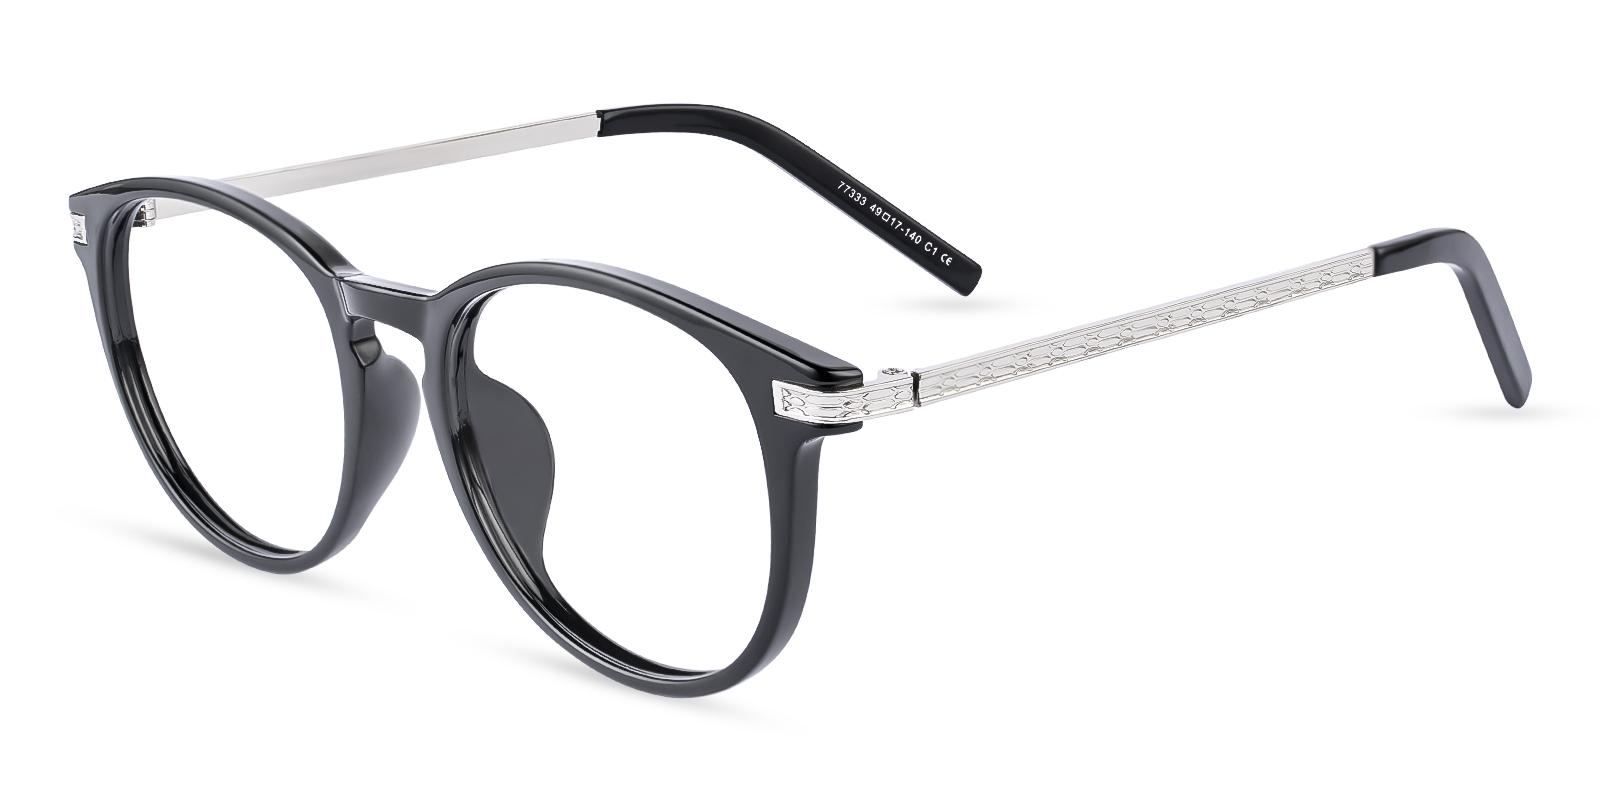 Callie Black Combination UniversalBridgeFit , Eyeglasses Frames from ABBE Glasses